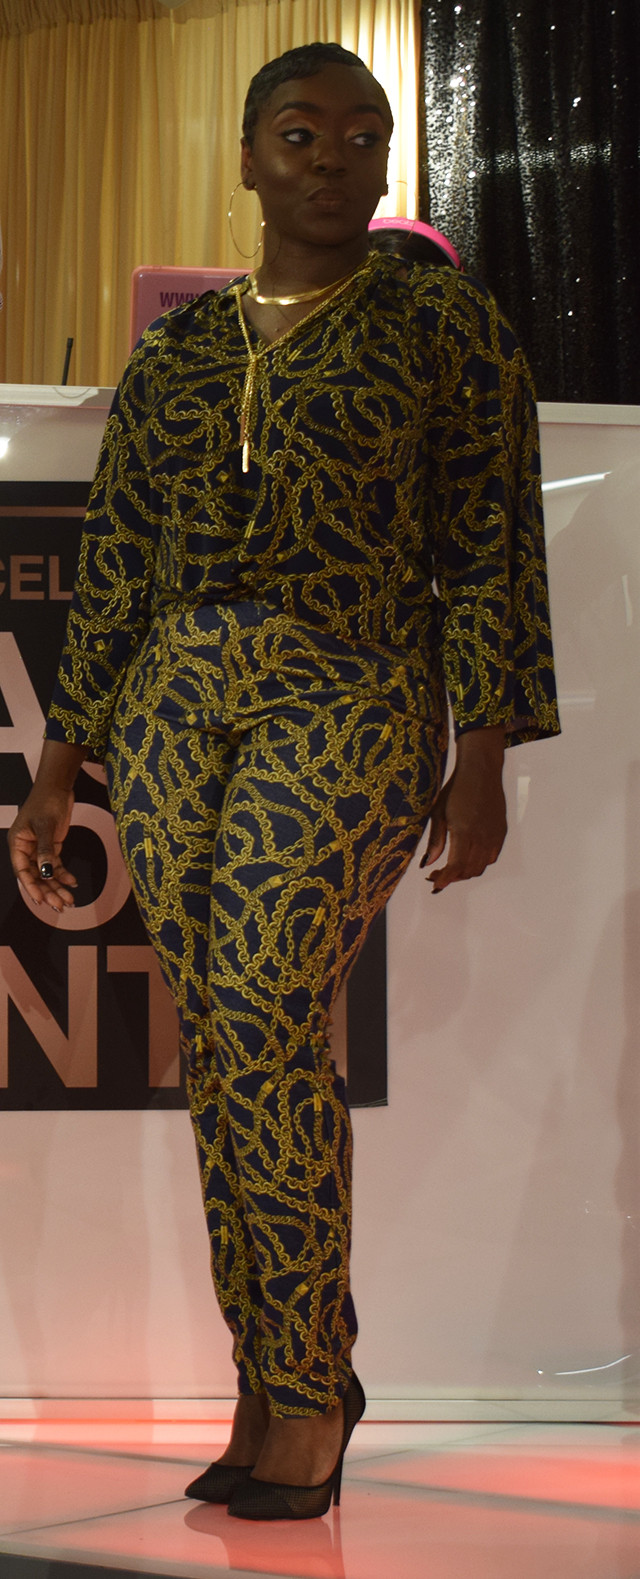 Macy's Black History Month Celebration in Atlanta at Lenox Mall; Gavon Owens Fashion Inspired by Rihanna Fenty